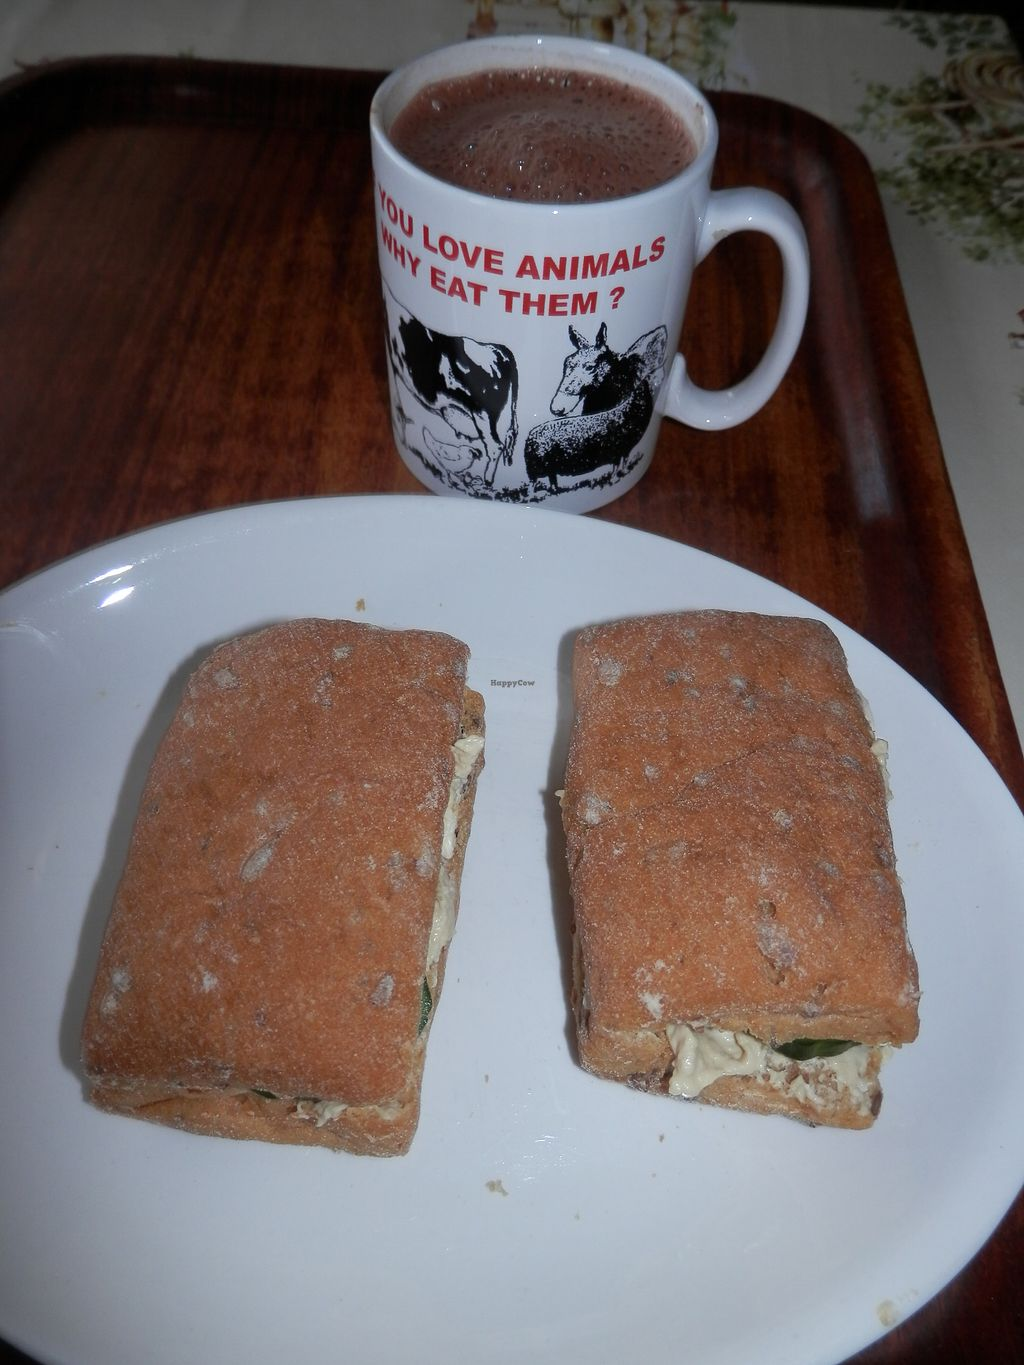 "Photo of Hillside Shire Horse Sanctuary Cafe  by <a href=""/members/profile/Vegan_Belle"">Vegan_Belle</a> <br/>Gluten free rolls filled with hummus and cucumber and a mug of hot chocolate <br/> October 4, 2017  - <a href='/contact/abuse/image/26581/311749'>Report</a>"